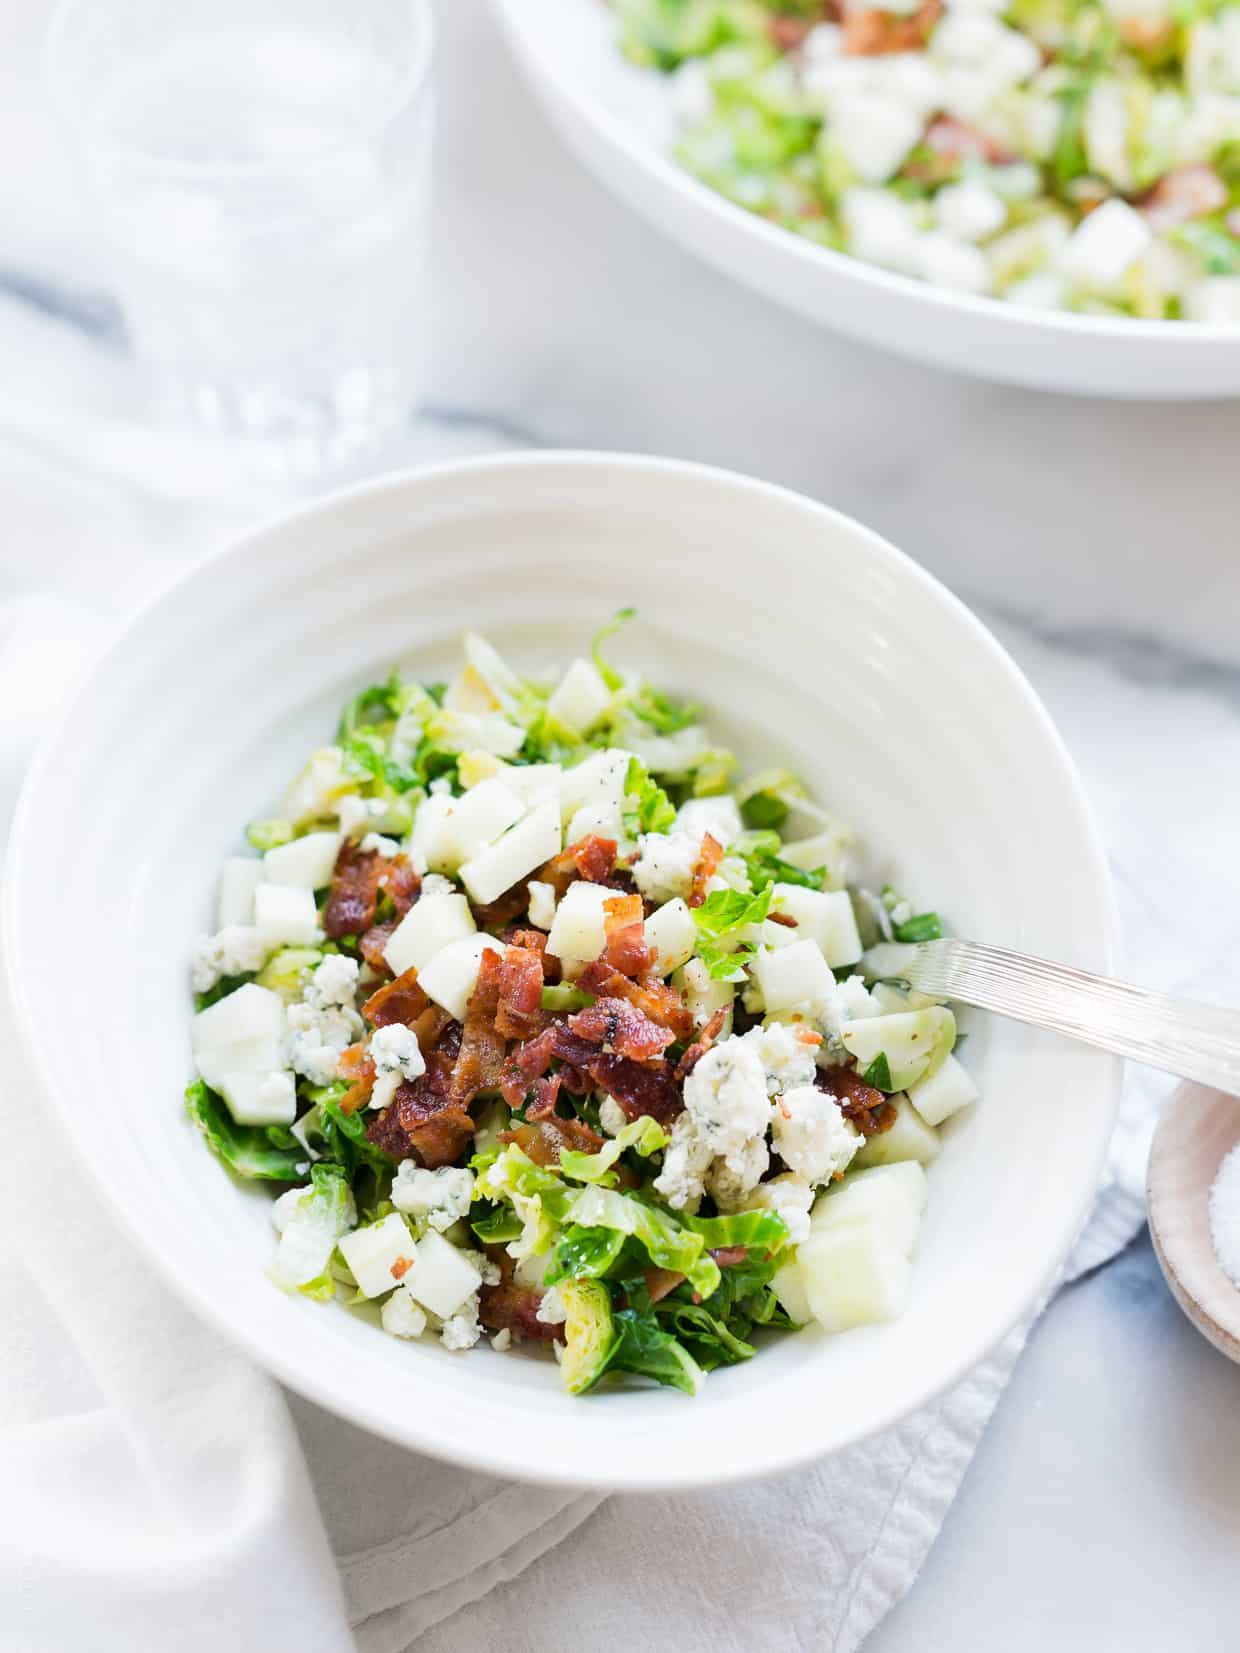 A white bowl filled with Shredded Brussels Sprouts Salad.